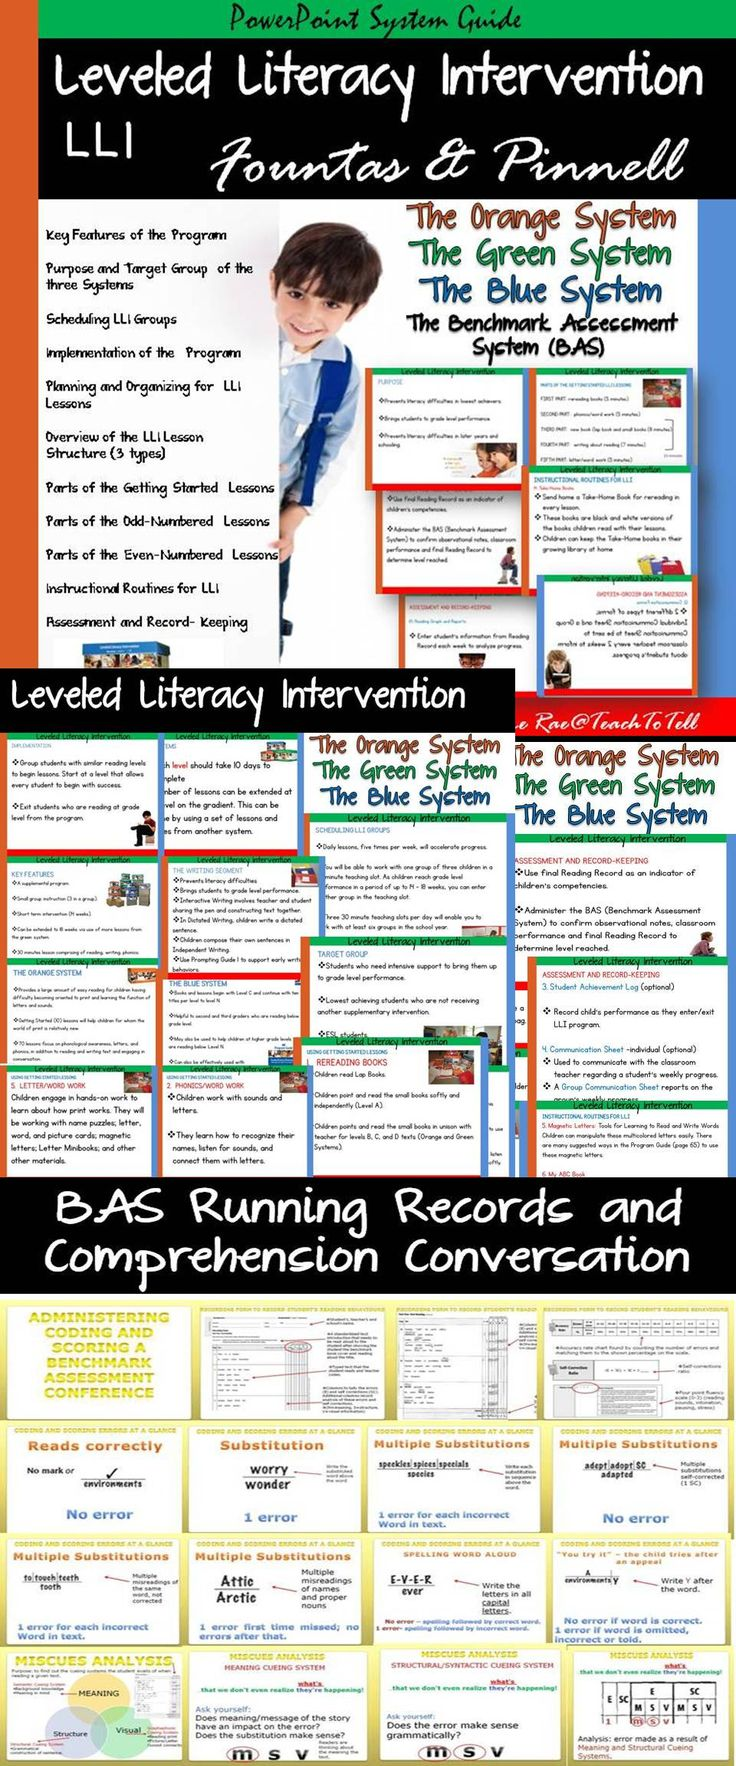 This PowerPoint Presentation Guide will equip you with key content knowledge on the Leveled Literacy Intervention (LLI) Orange System, Green System, and Blue System. Also included is a PowerPoint file on the Benchmark Assessment System (BAS) that provides practical information on conducting Running Records. This will be useful during the even-numbered lessons when a Reading Record needs to be done.